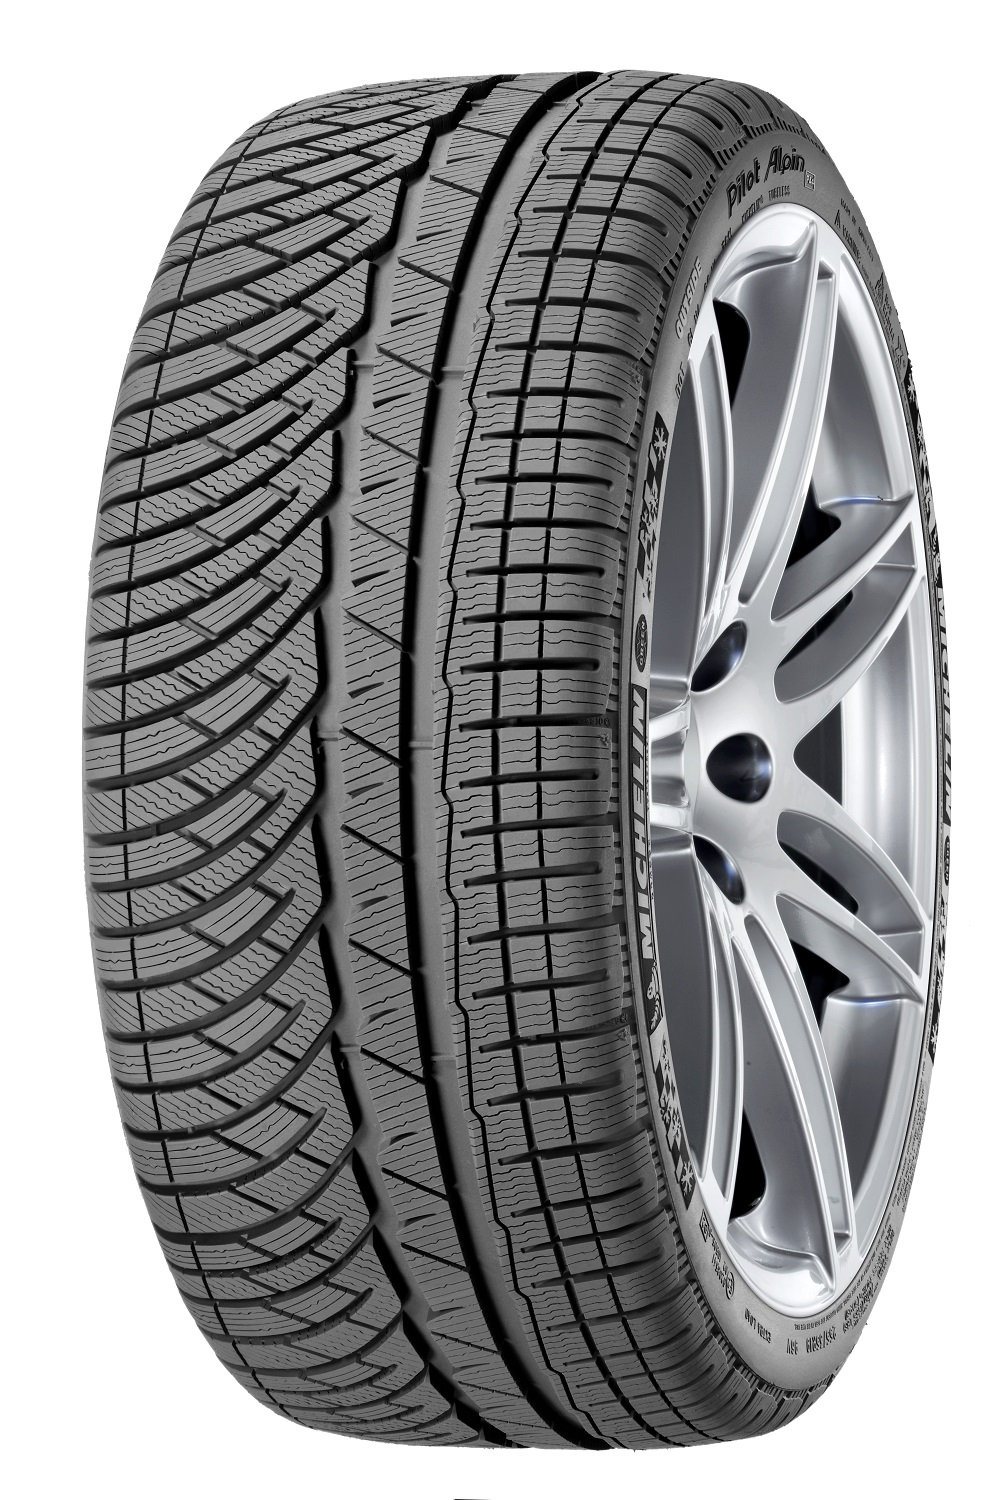 Anvelopa iarna MICHELIN PILOT ALPIN 4 ZP XL 225/45 R18 95V